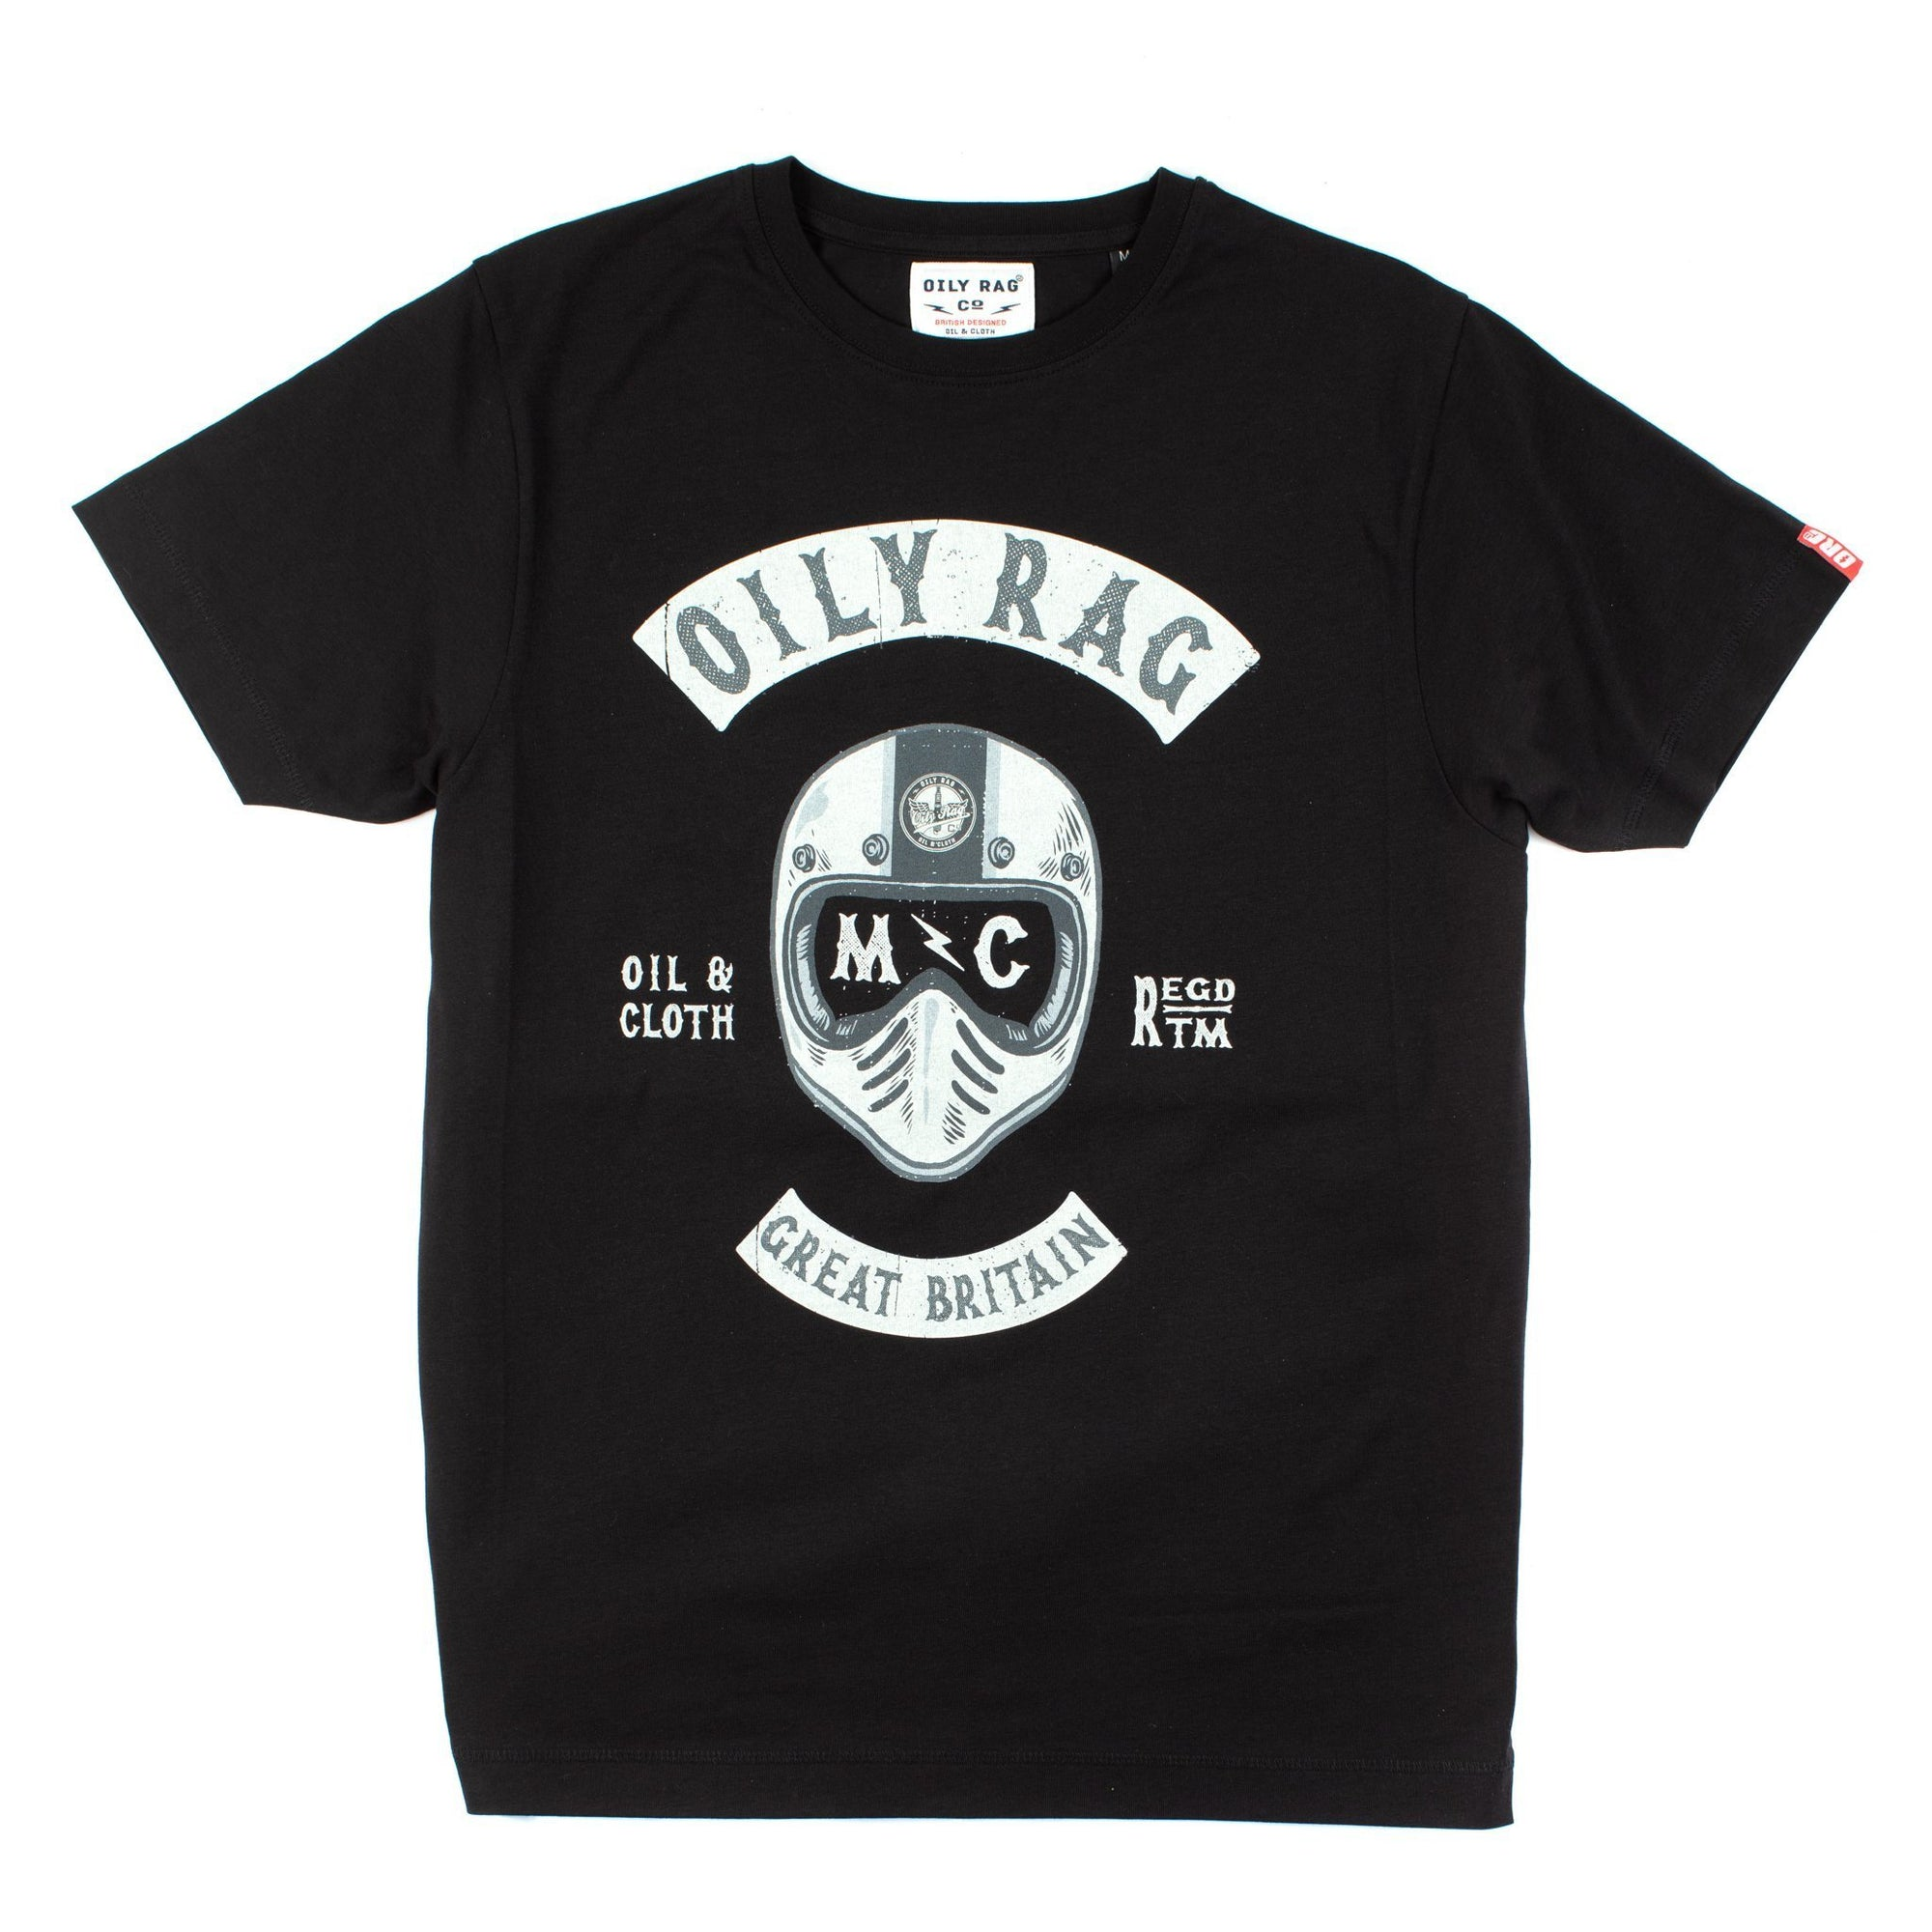 Oily Rag Clothing - Oily Rag Clothing Black Label Motorrad Kapitel T'Shirt - T-Shirts - Salt Flats Clothing